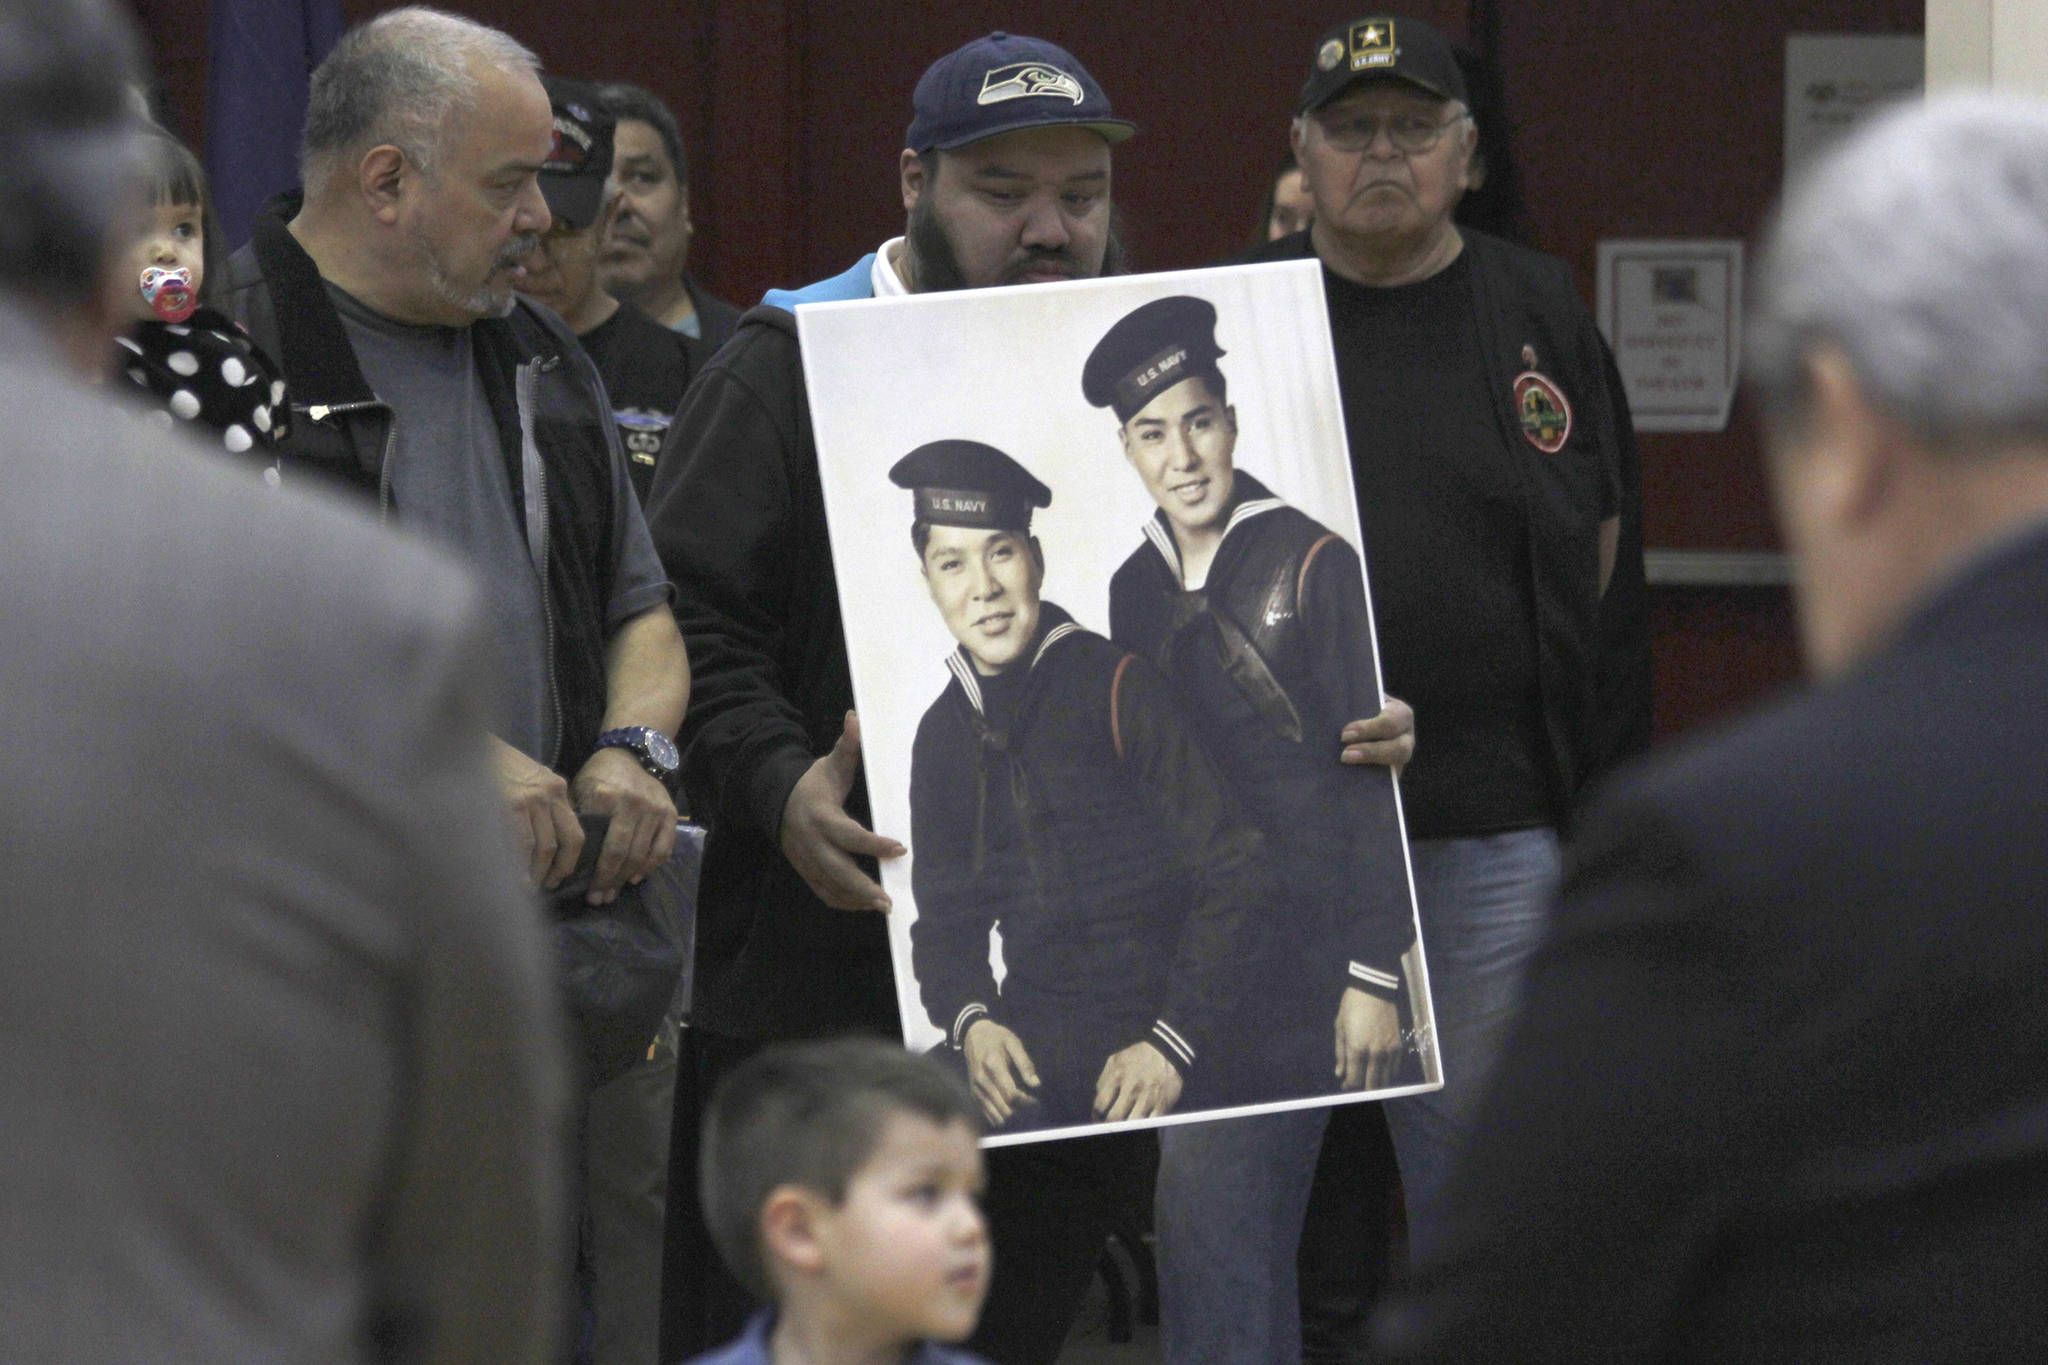 Family members of Mark and Harvey Jacobs hold a picture of the brothers during a ceremony honoring Tlingit code talkers on Monday, March 18, 2019. (Alex McCarthy | Juneau Empire)